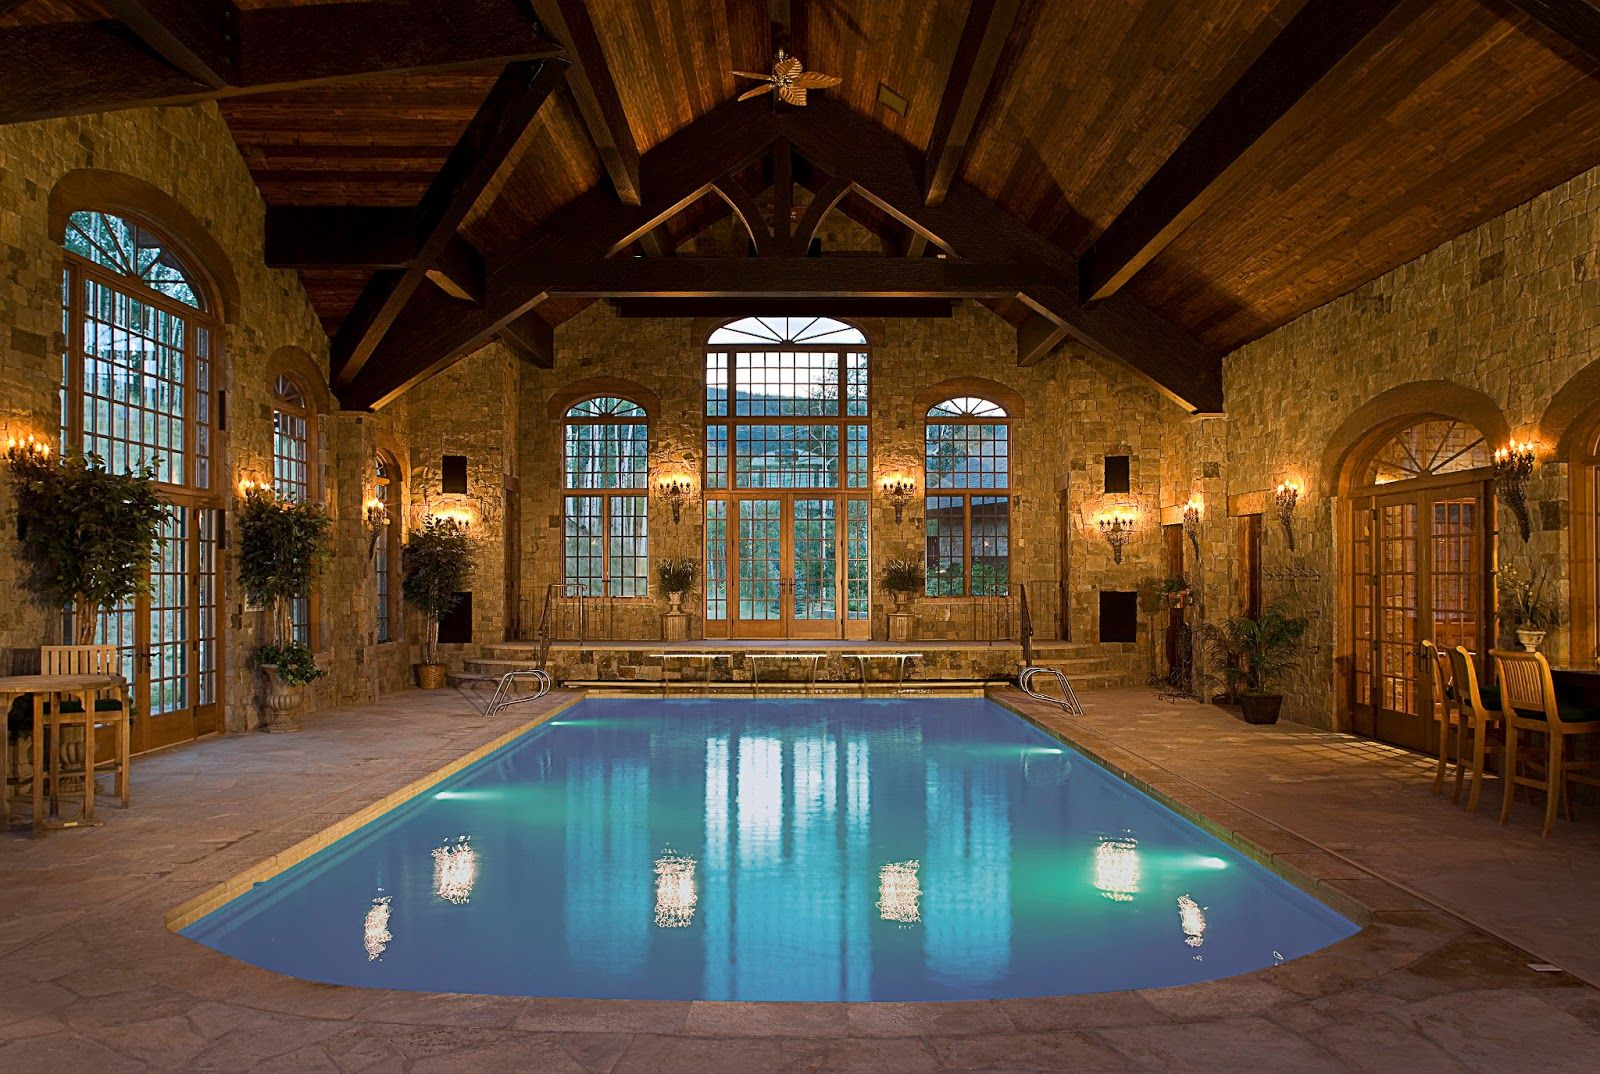 Houses with pools inside - 17 Best Images About Luxury Pool On Pinterest Luxury Pools Resorts And Pools